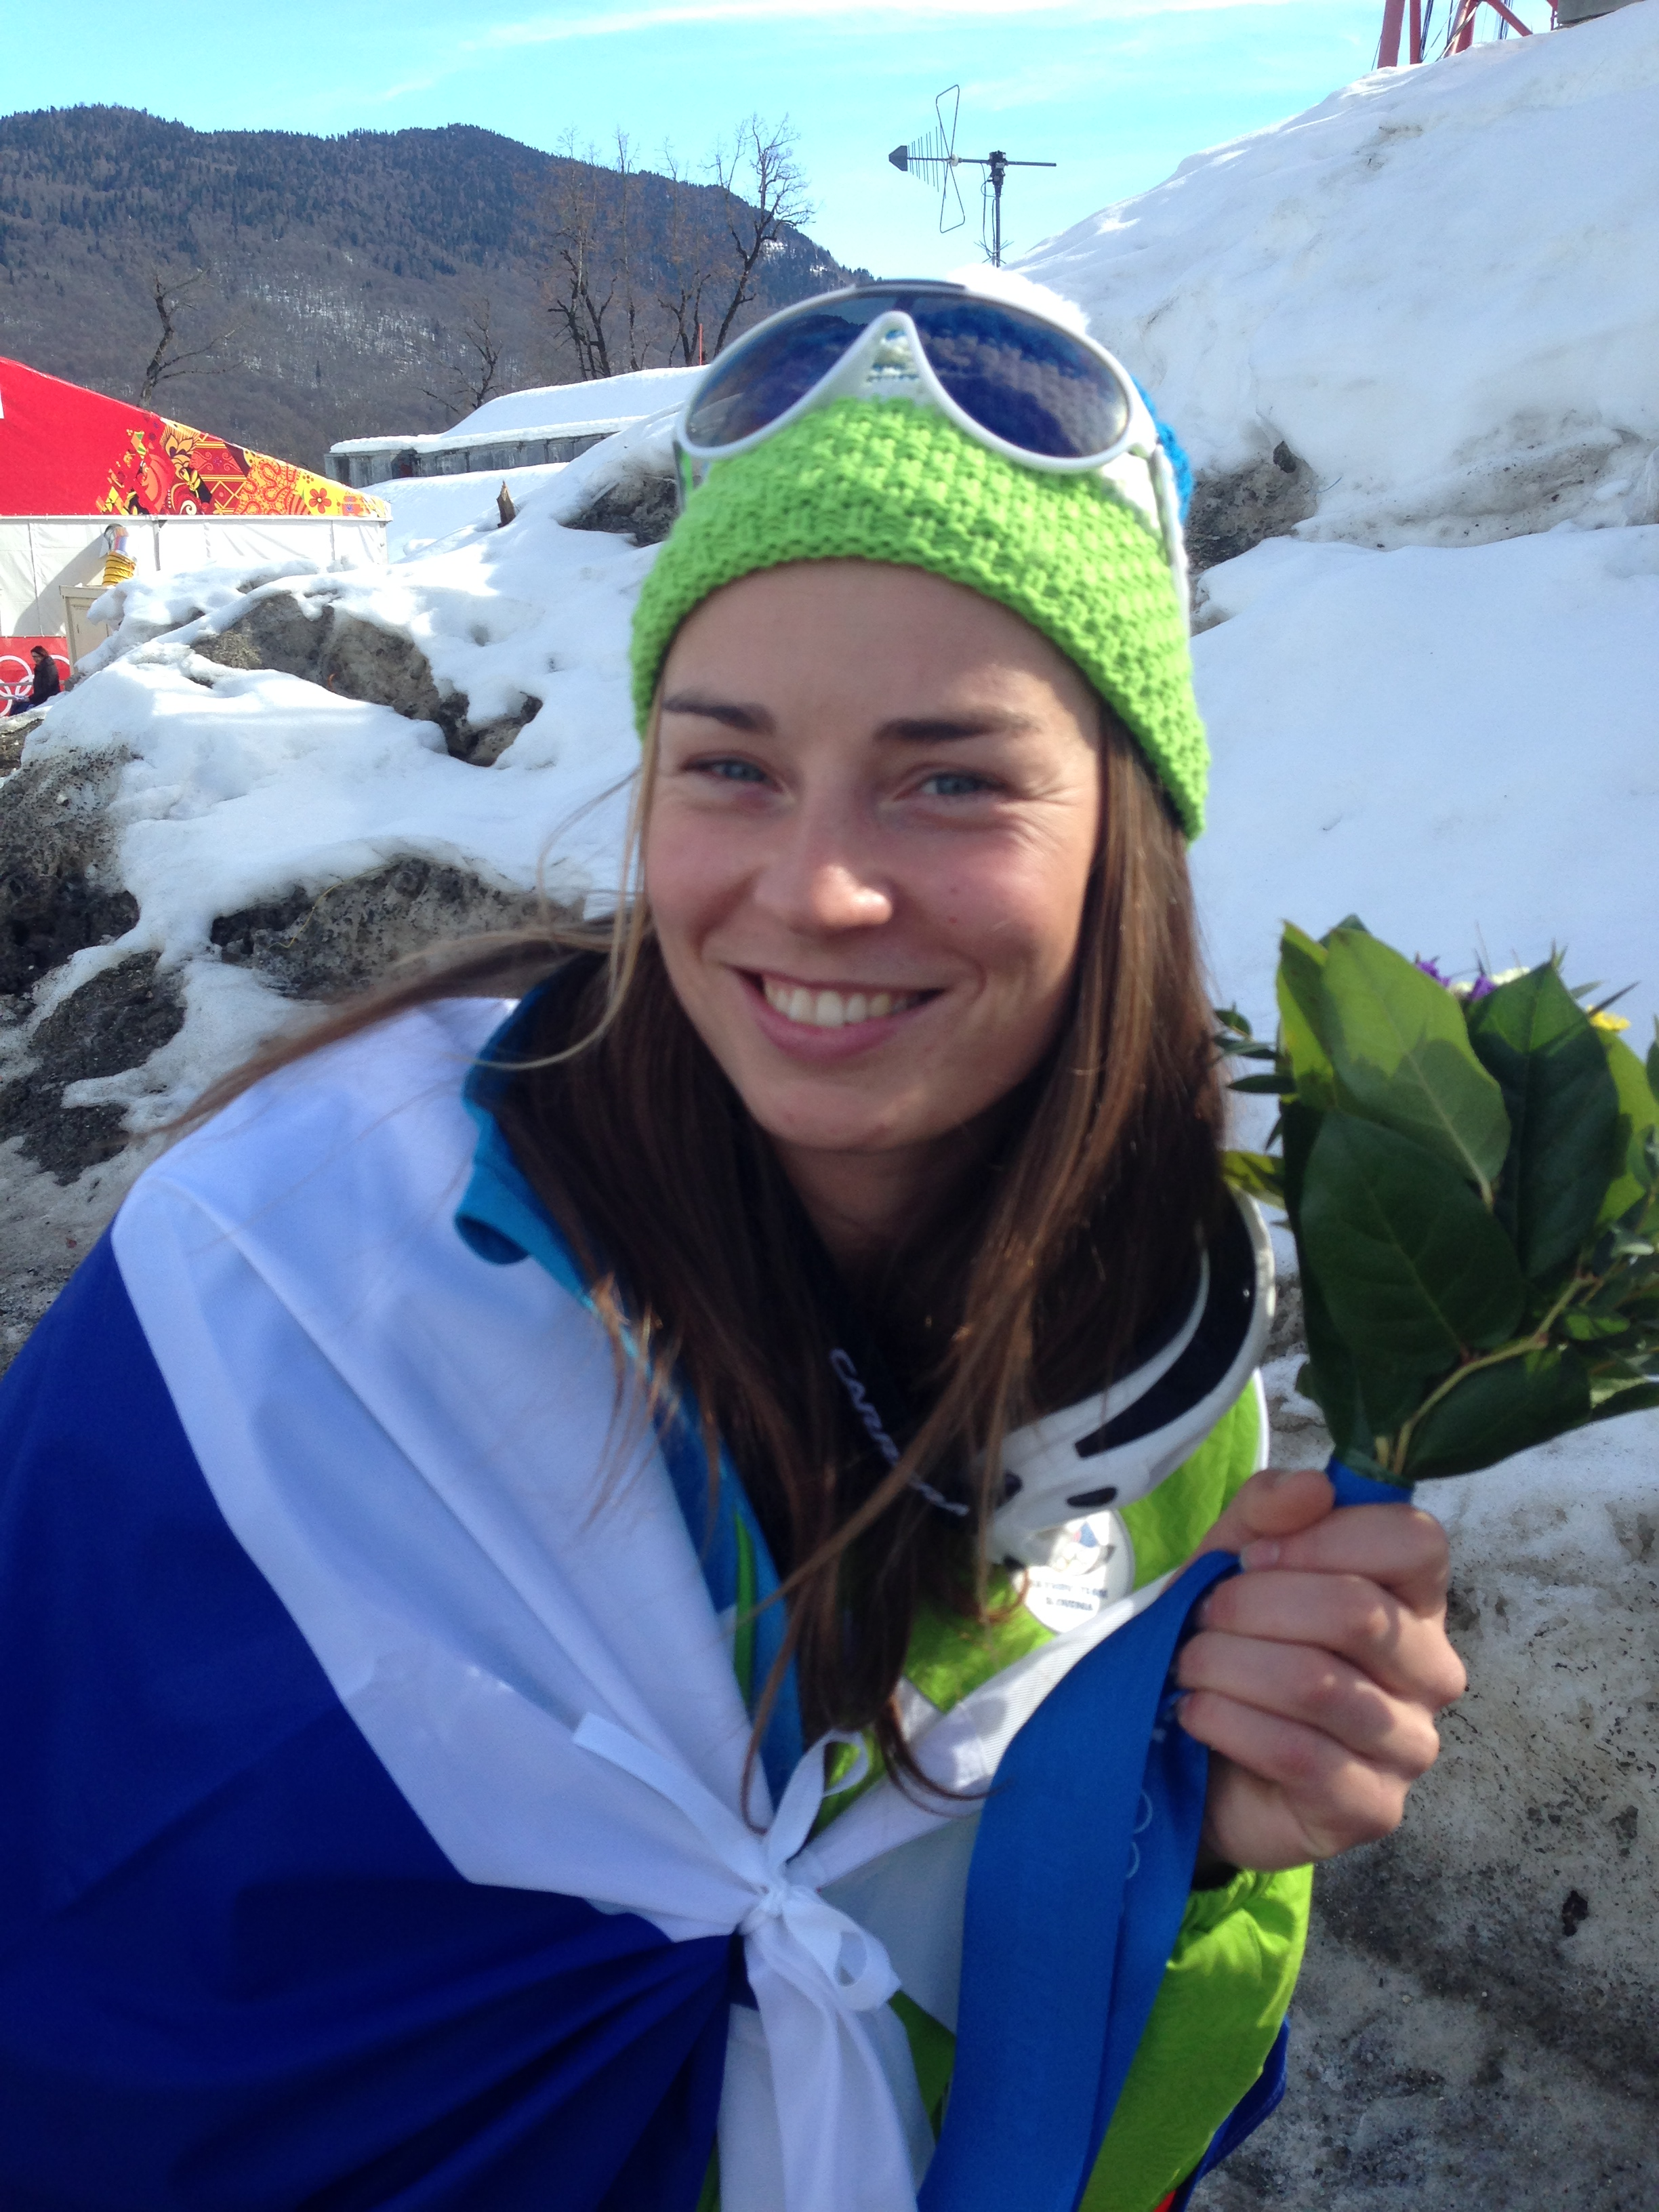 Tina Maze of Slovenia, co-gold medalist in the women's downhill